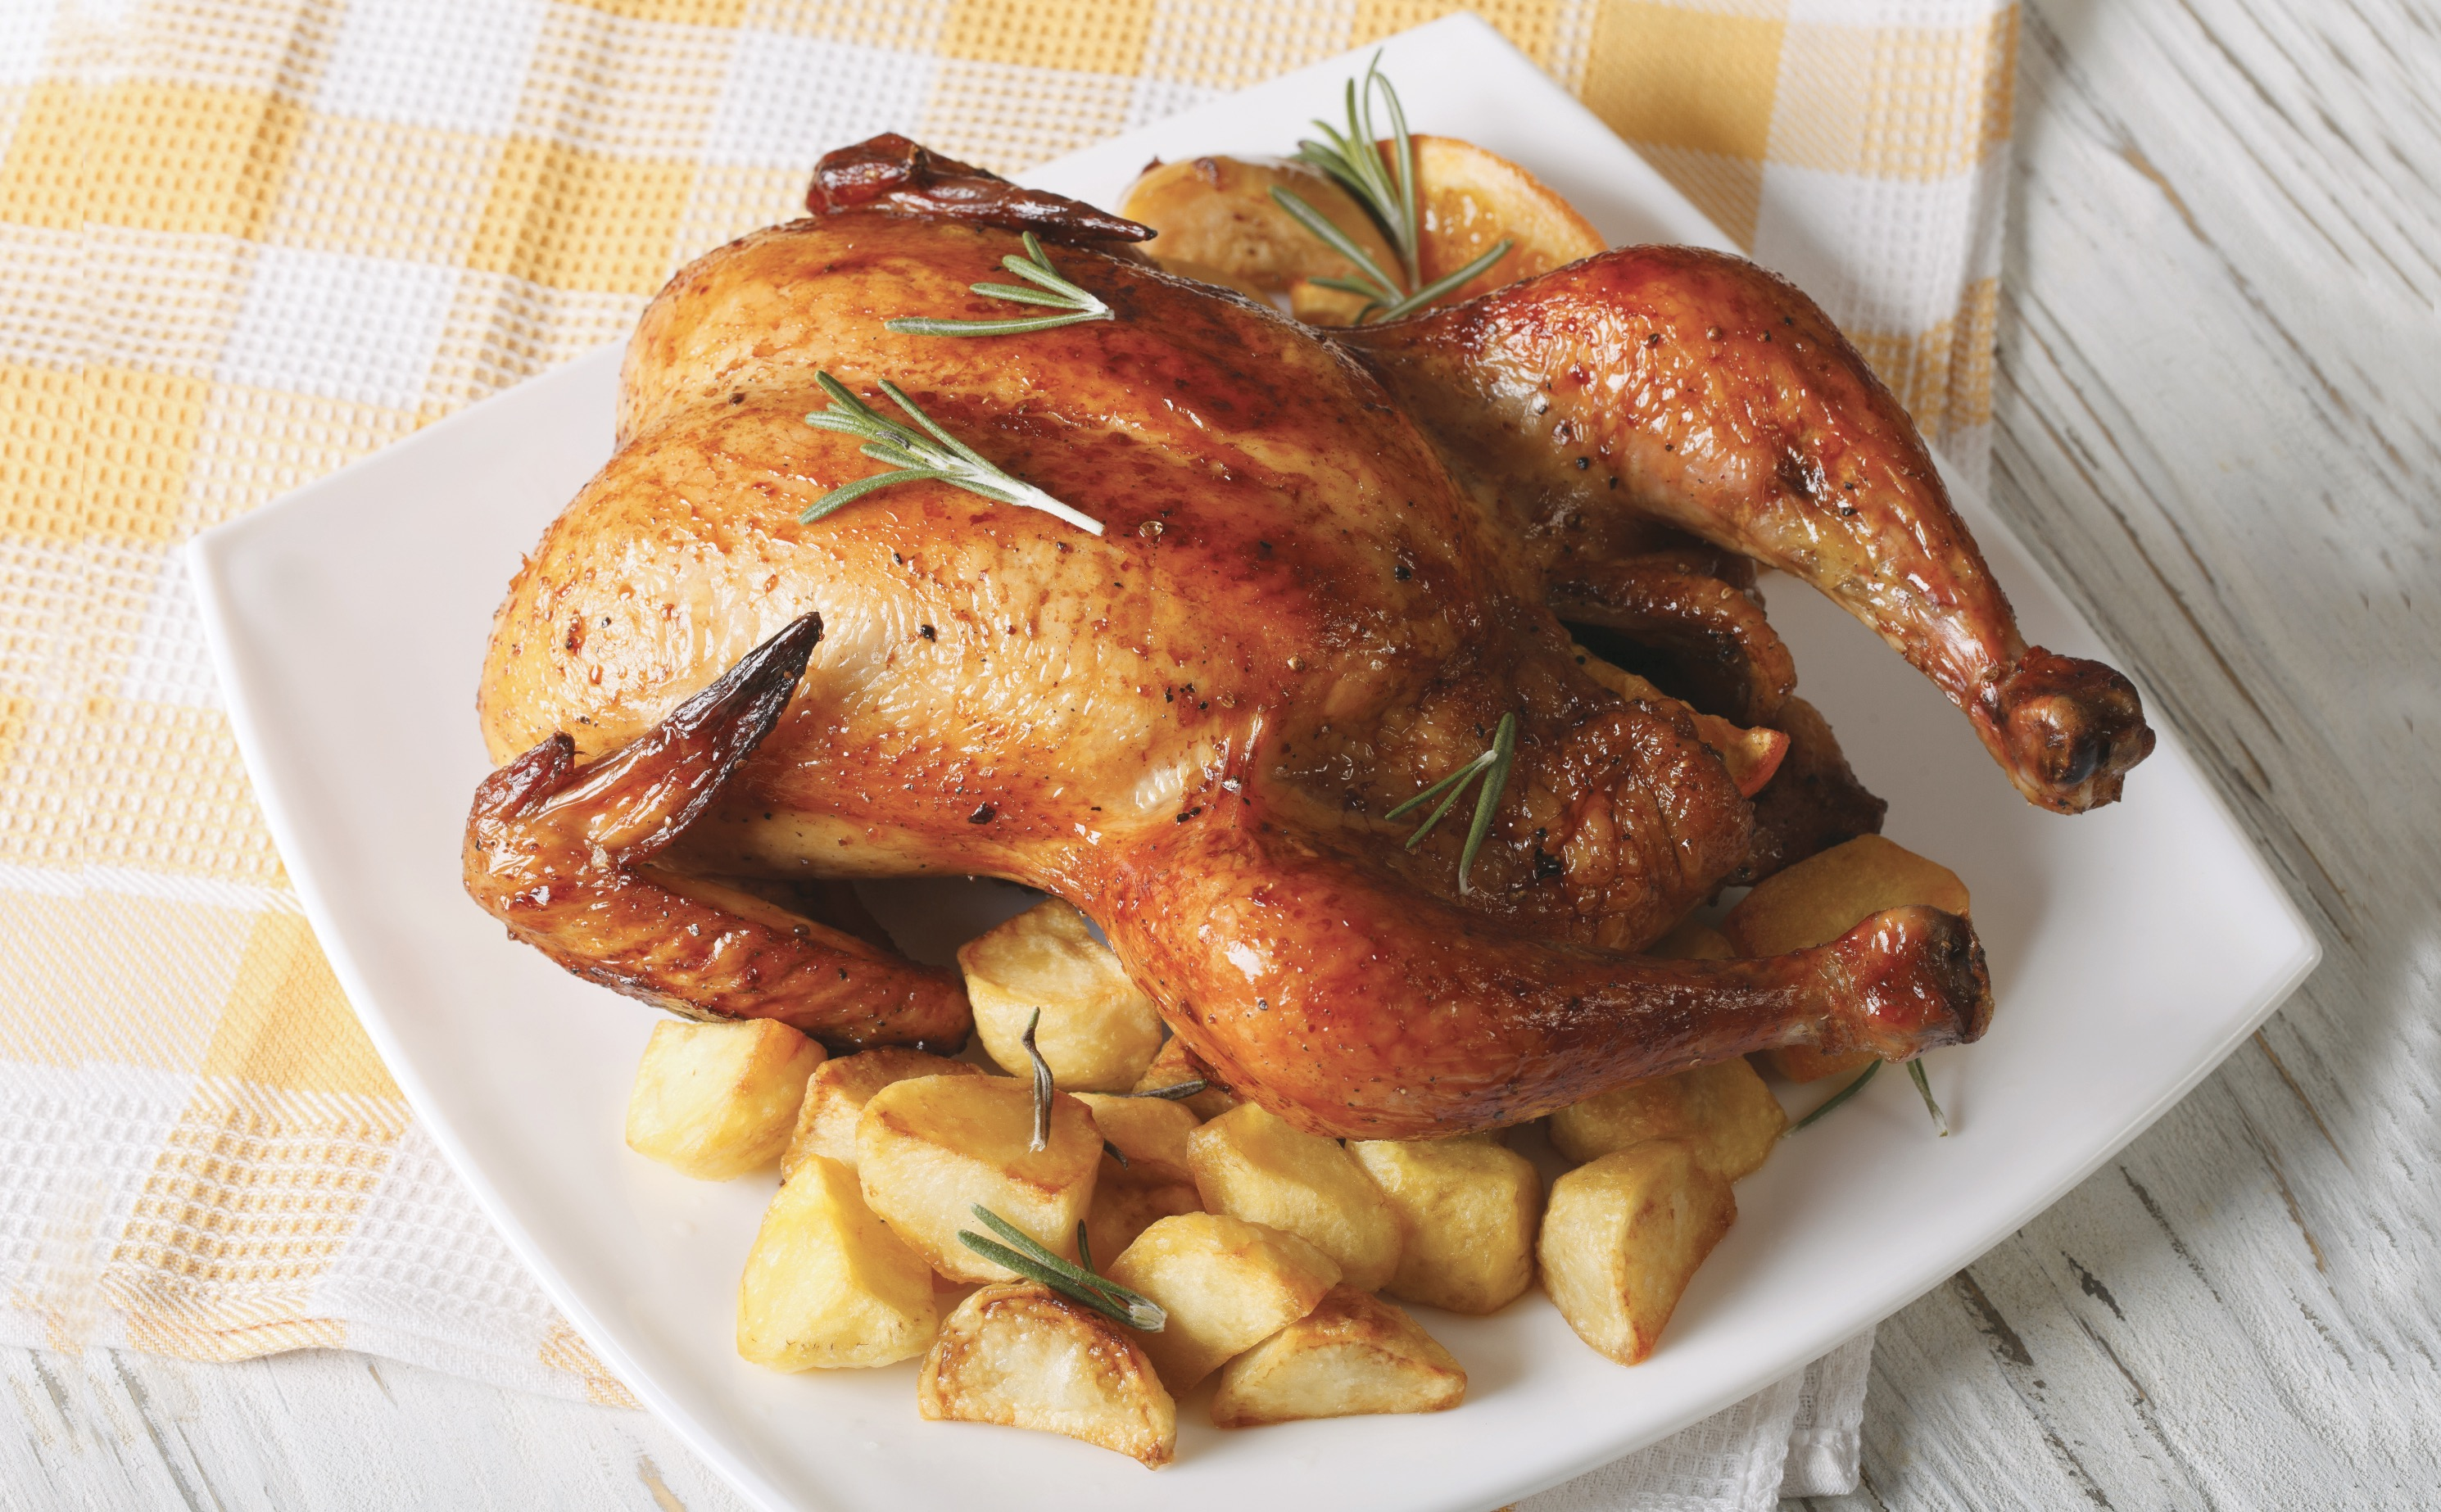 rotisserie chicken & sides, available at King Kullen